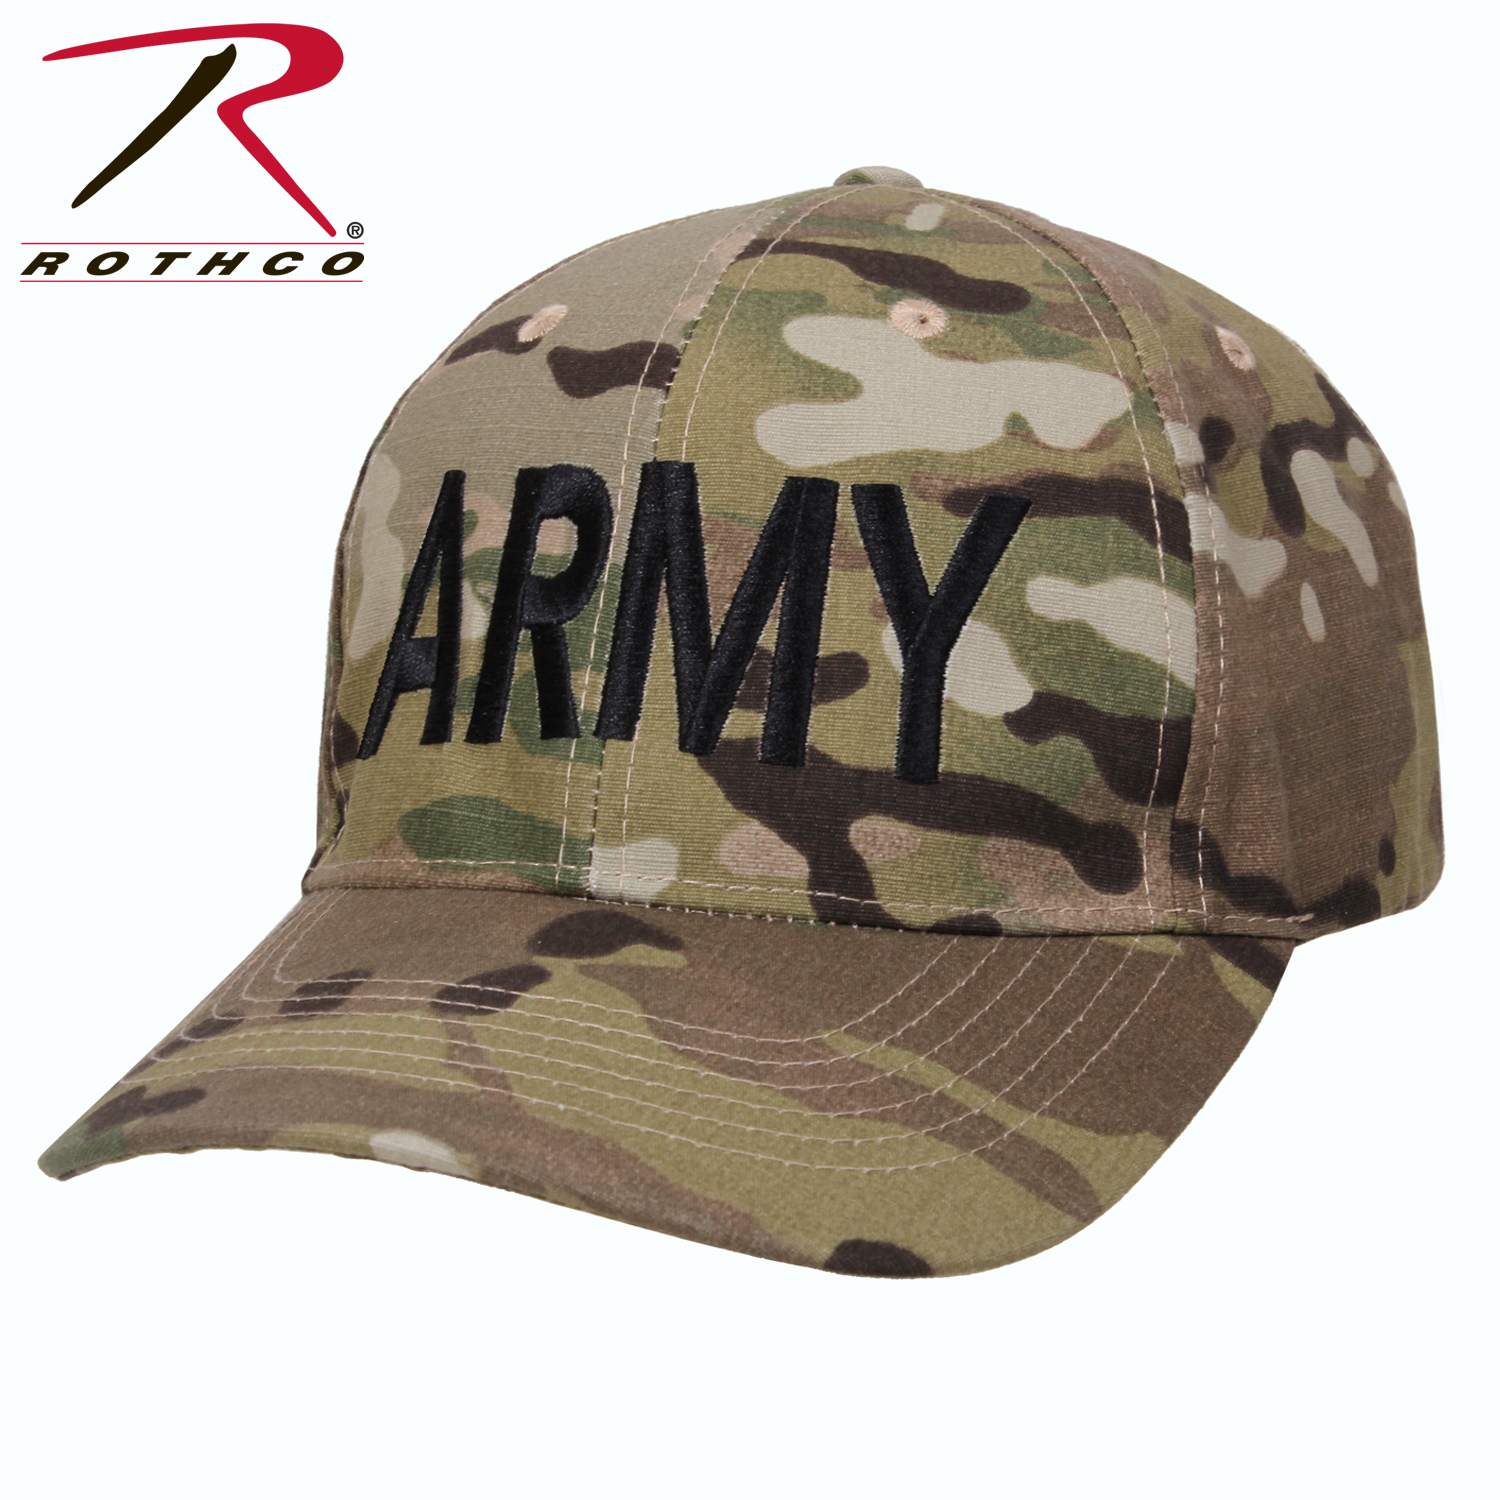 3849fb035e3 Rothco Low Profile Army MultiCam Hat